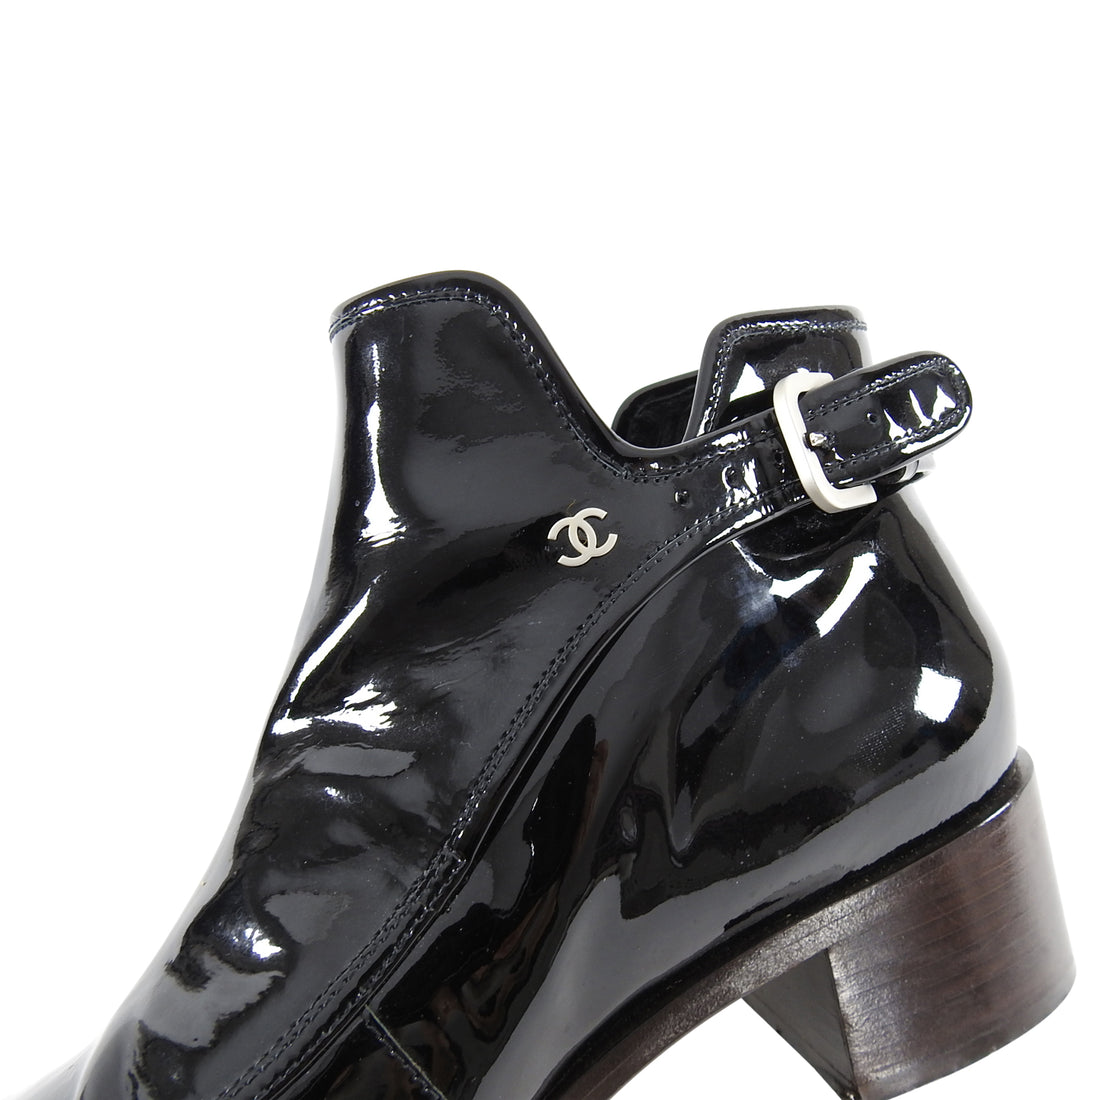 Chanel Black Patent Leather Point toe Ankle Boots - 9.5